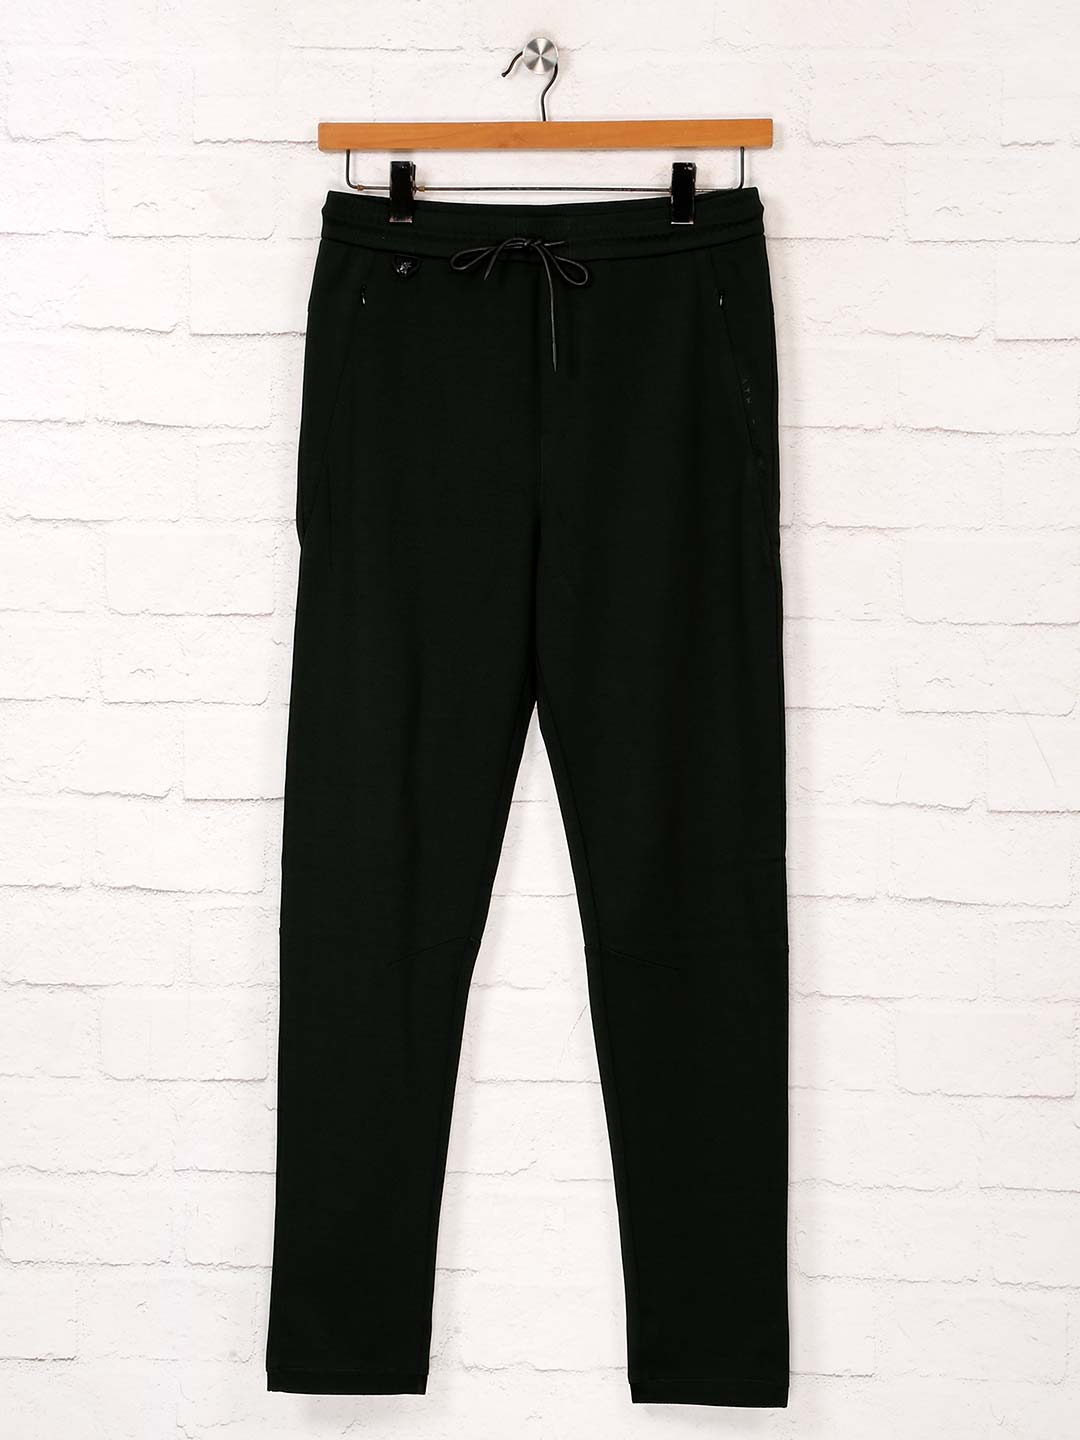 Maml solid green color track pant?imgeng=w_400